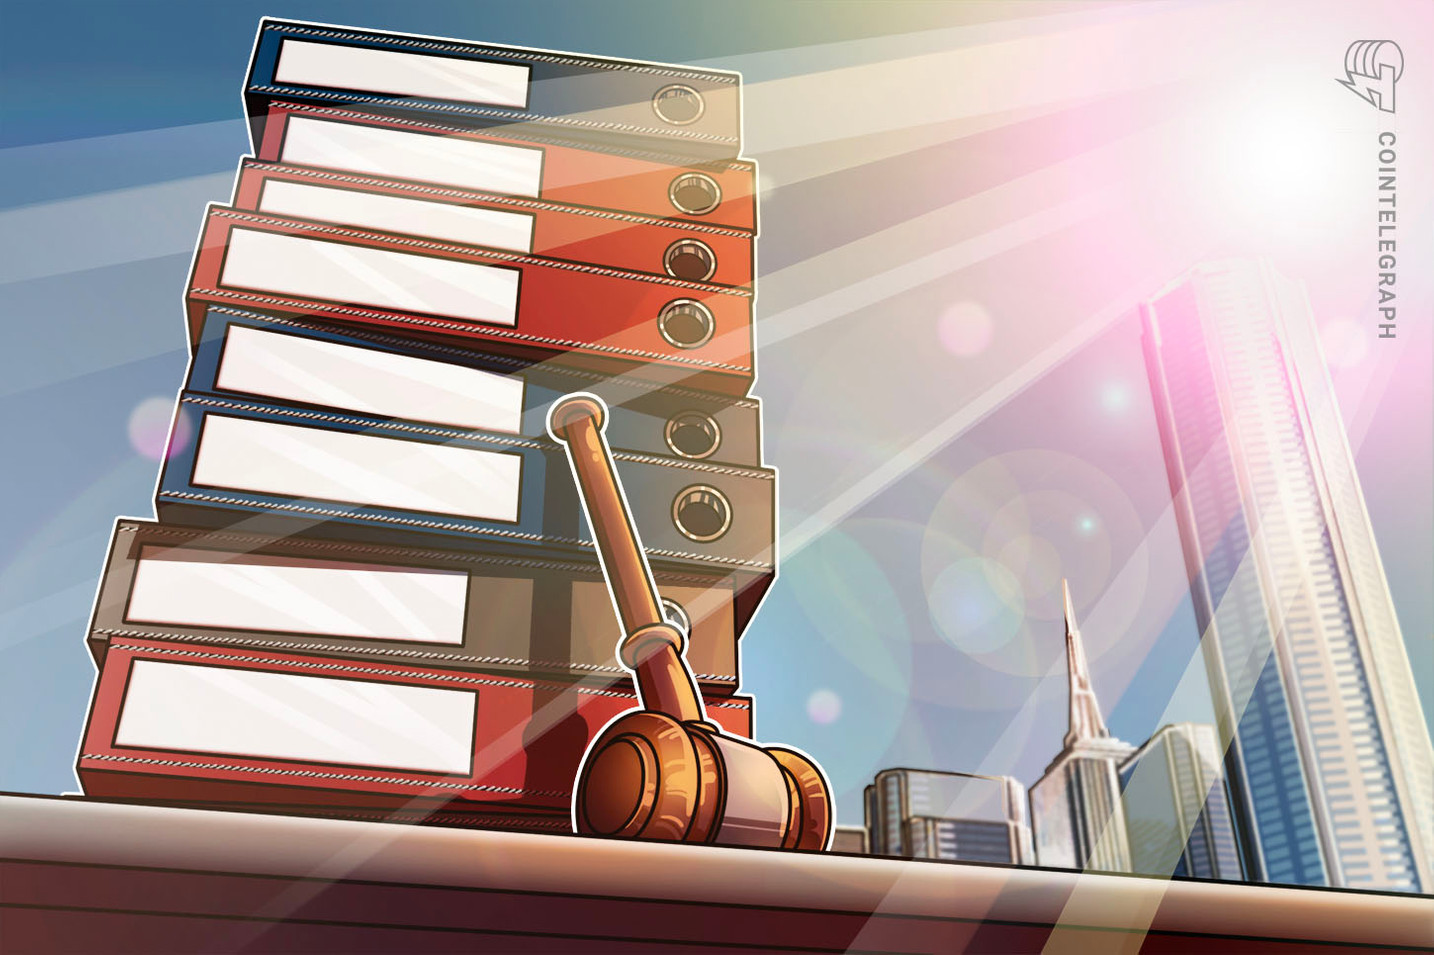 U.S. government goes to court over $11M USDT purportedly stolen by fake Coinbase rep